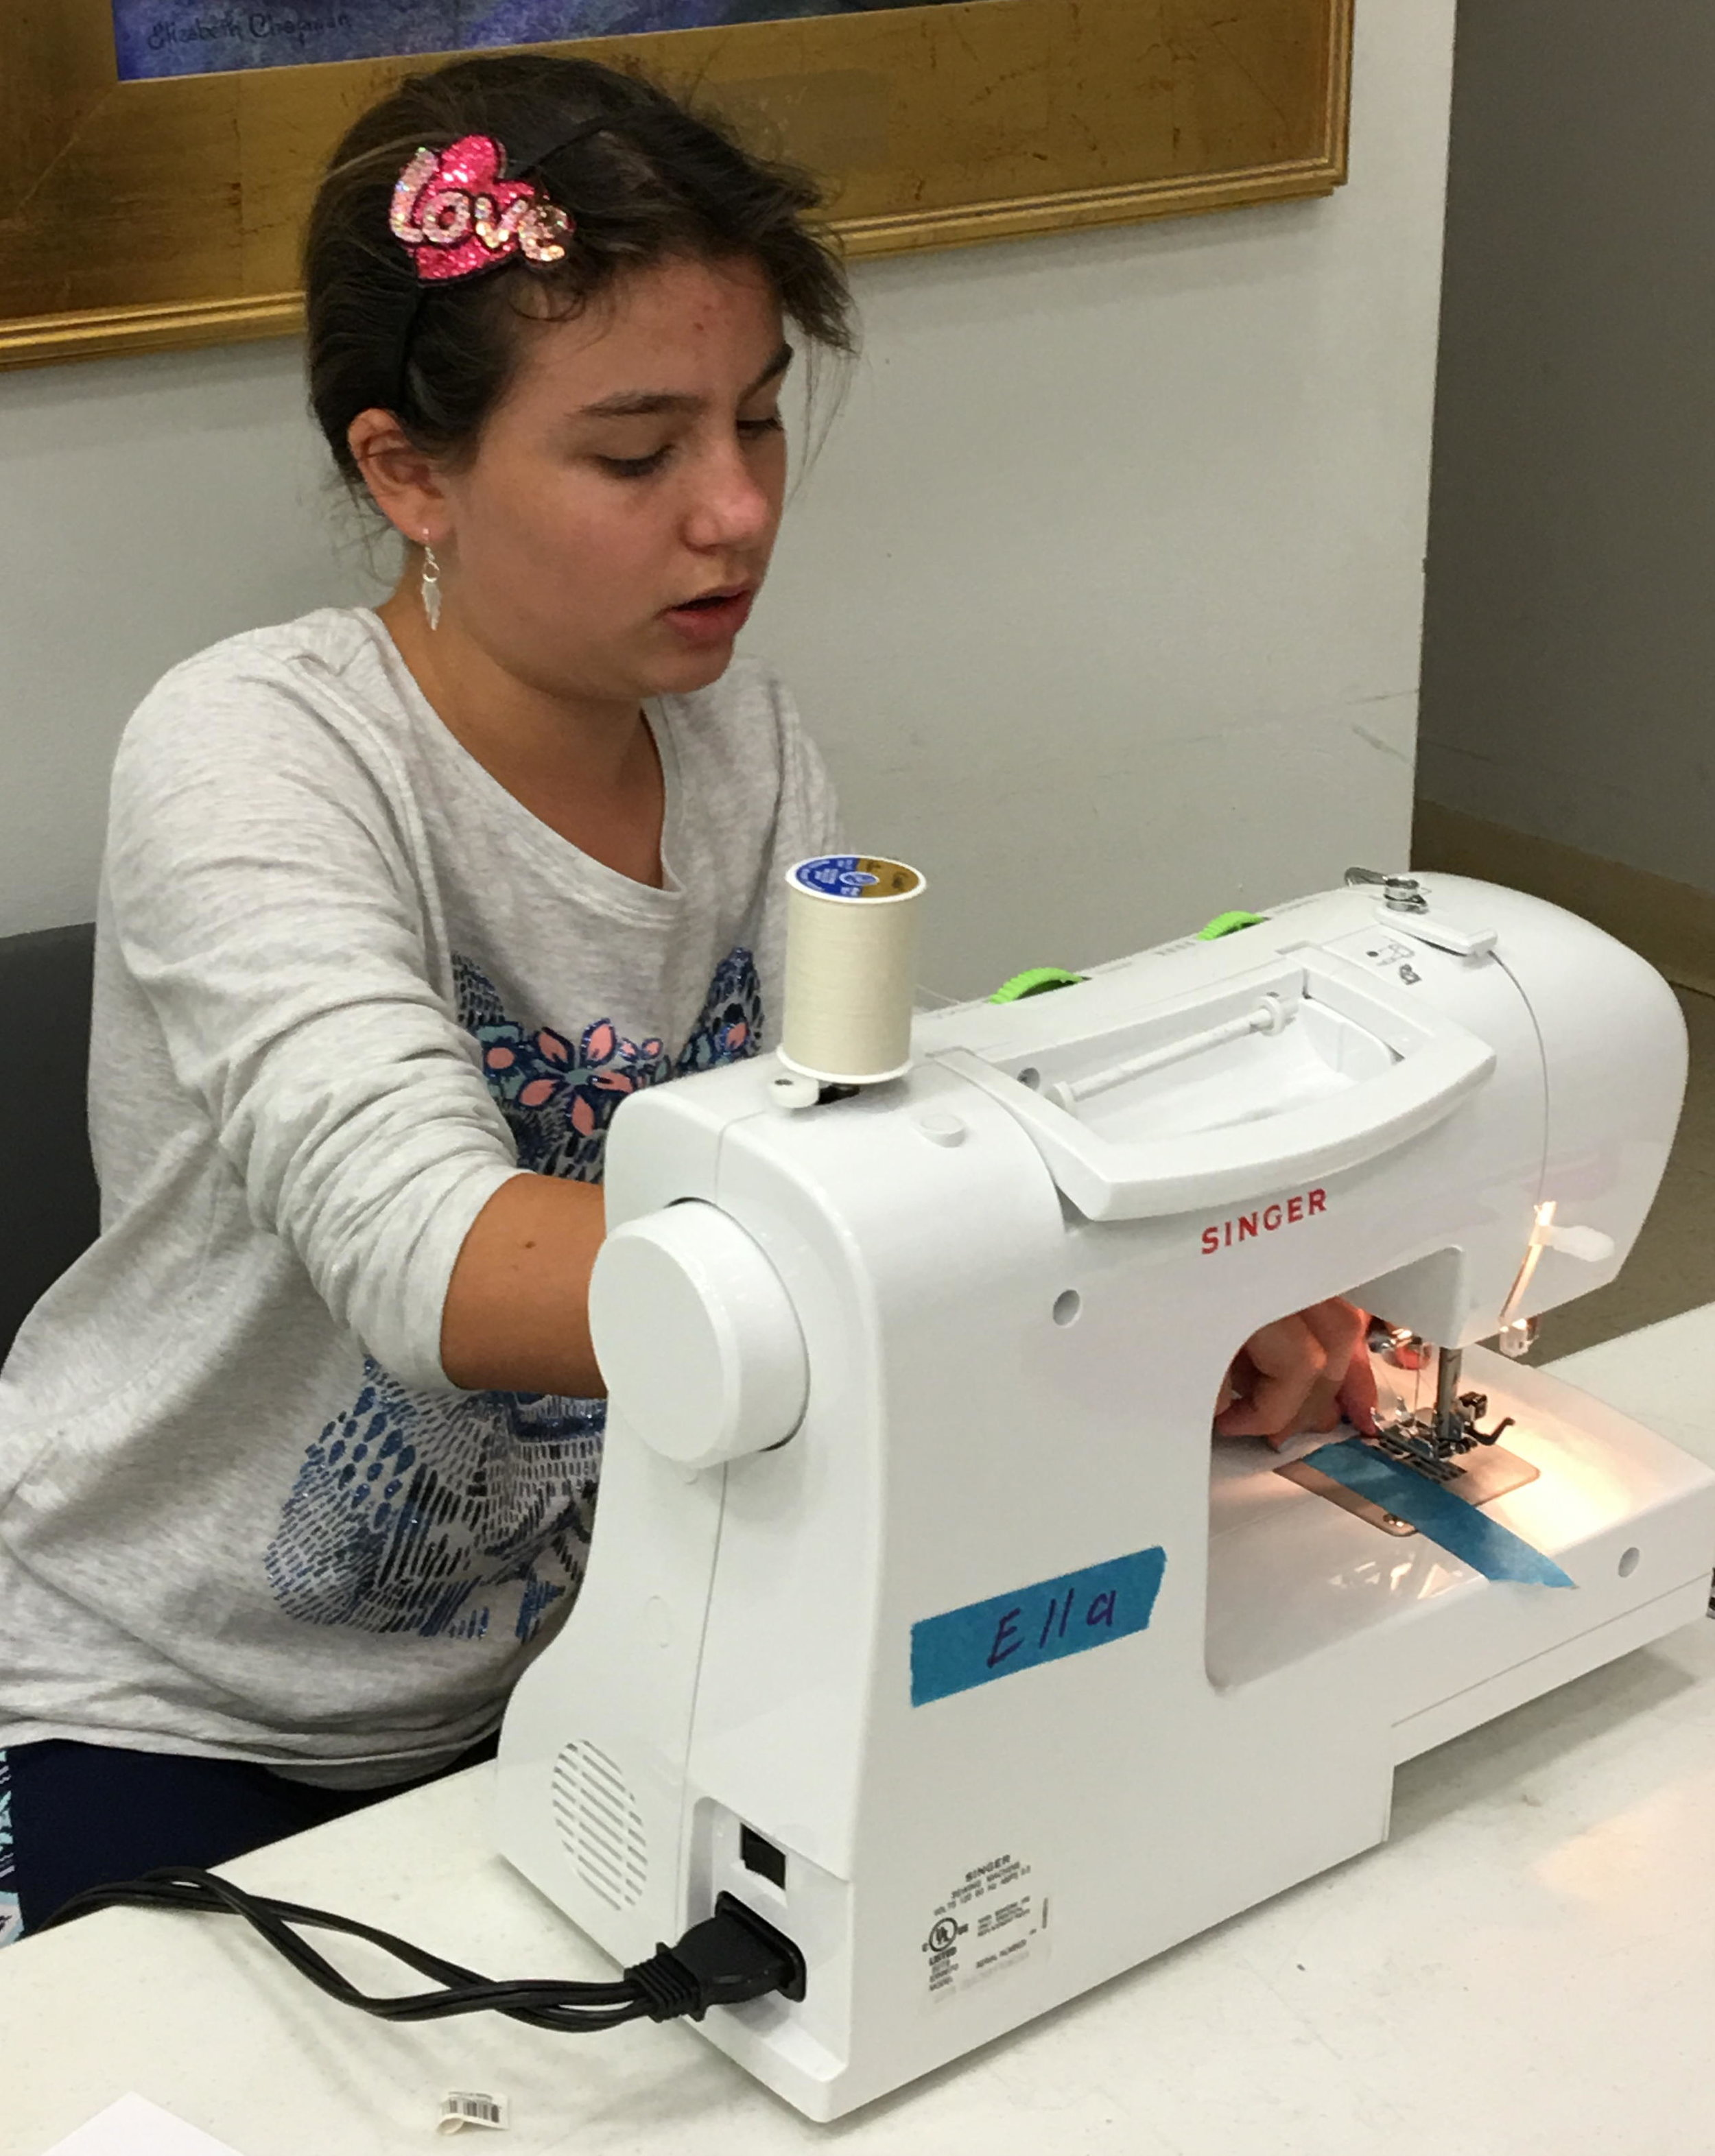 Ella_sewing.JPG